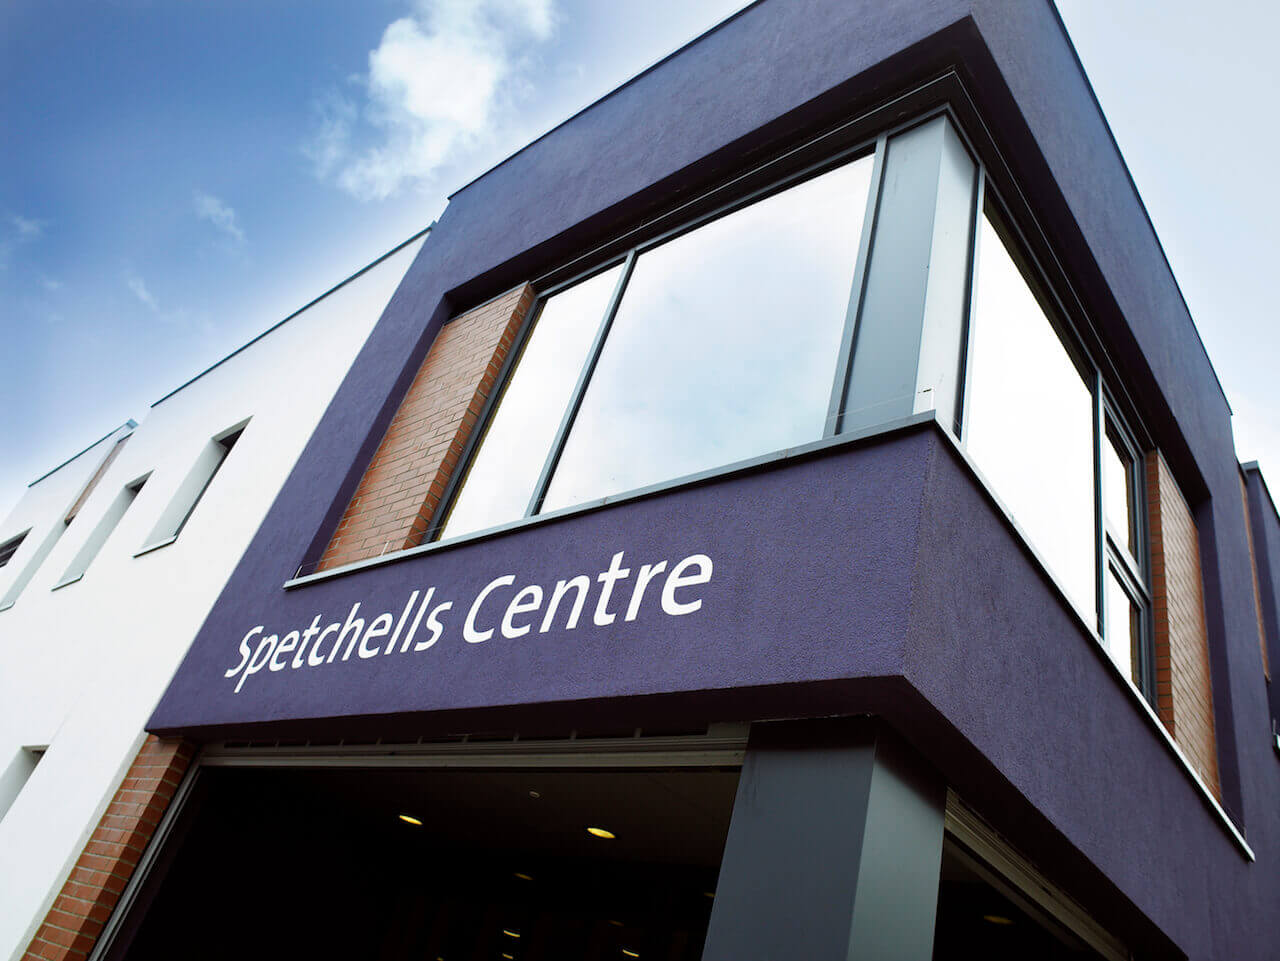 External signwriting at The Spetchells Centre in Prudhoe exemplifies design-led wayfinding